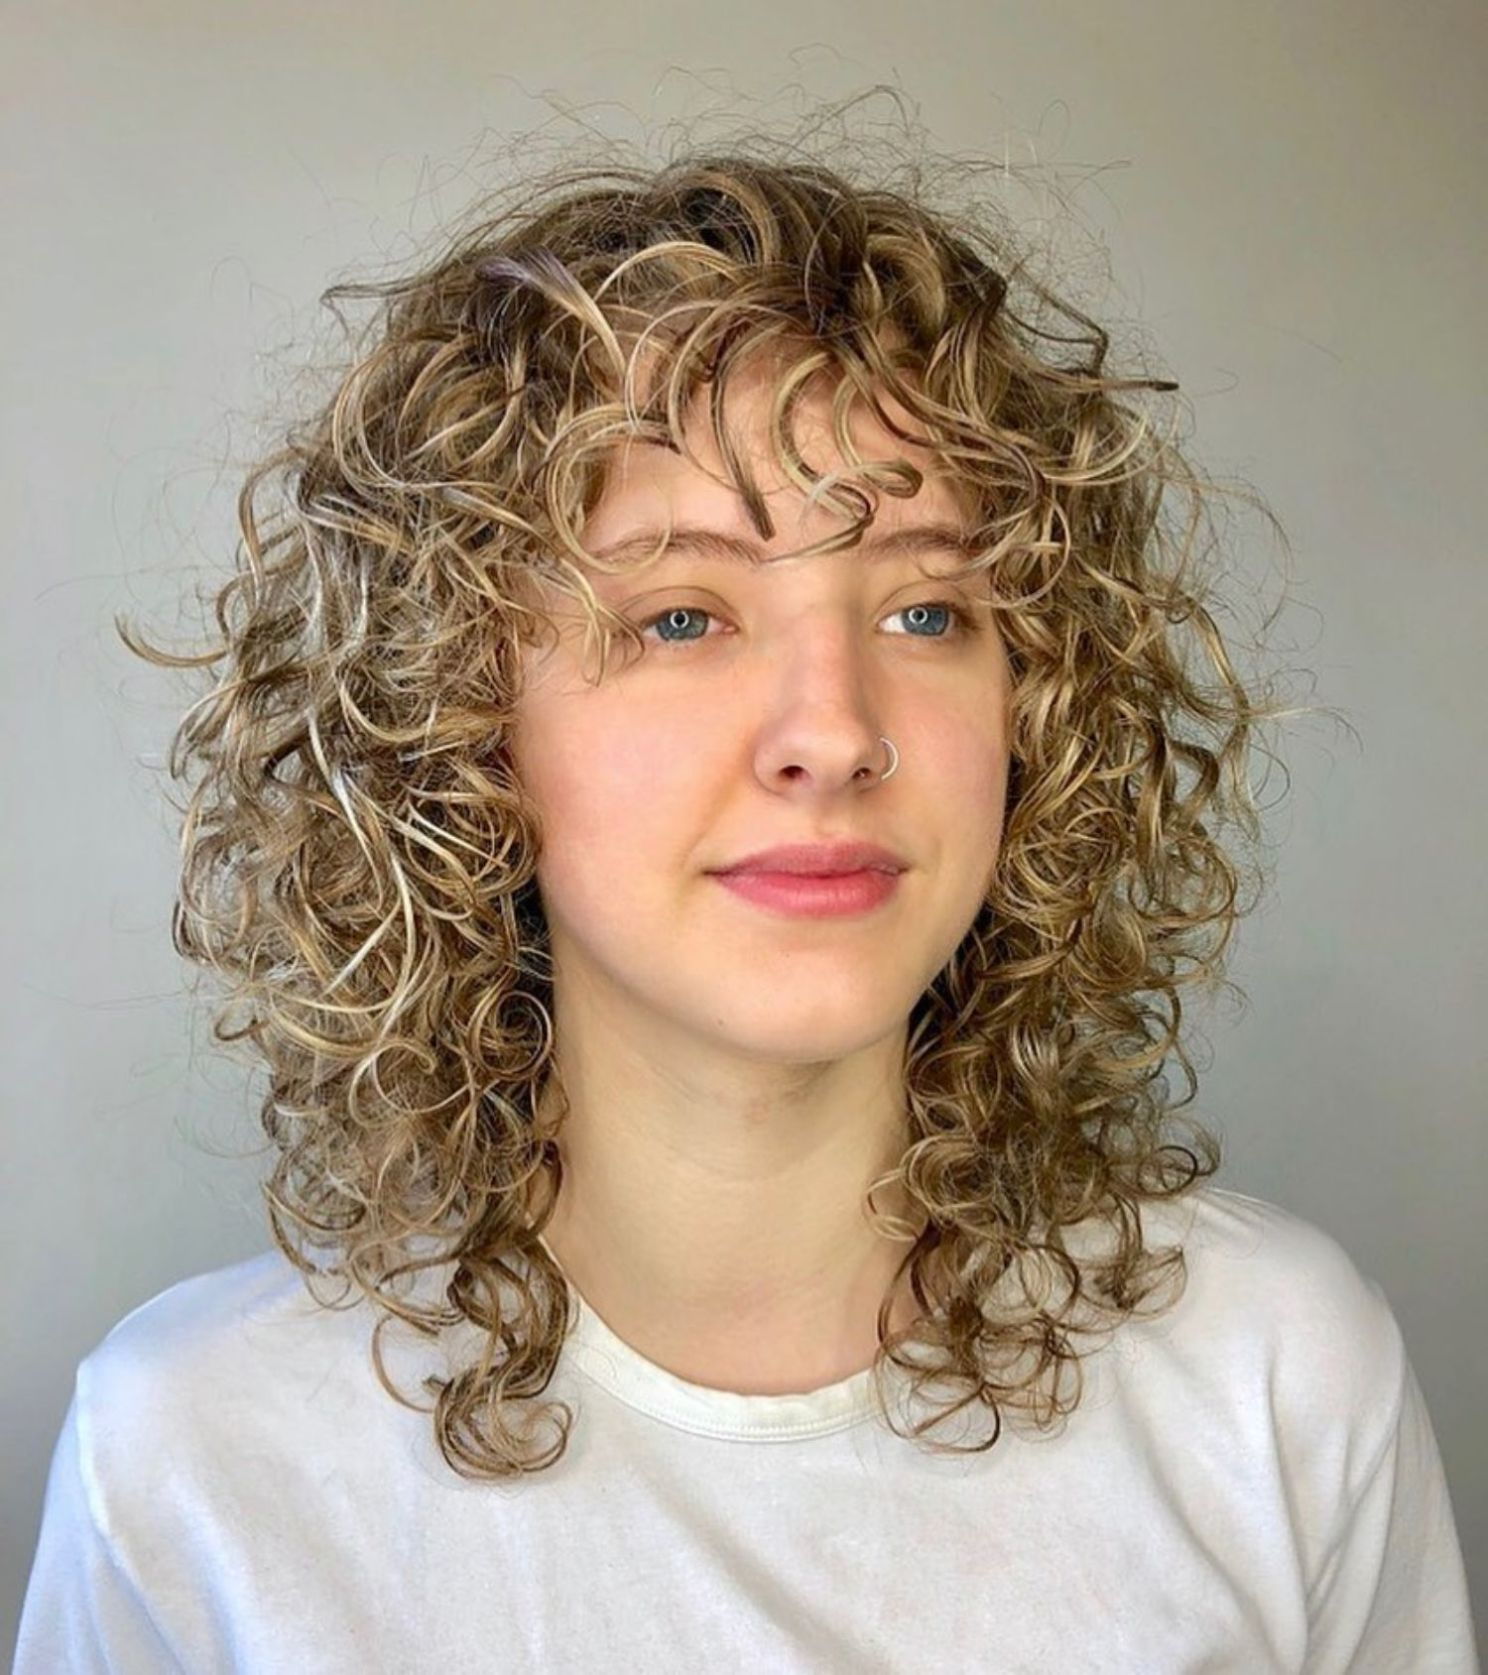 Perm.-1 70+ Outdated Hairstyle Ideas Coming Back in 2021